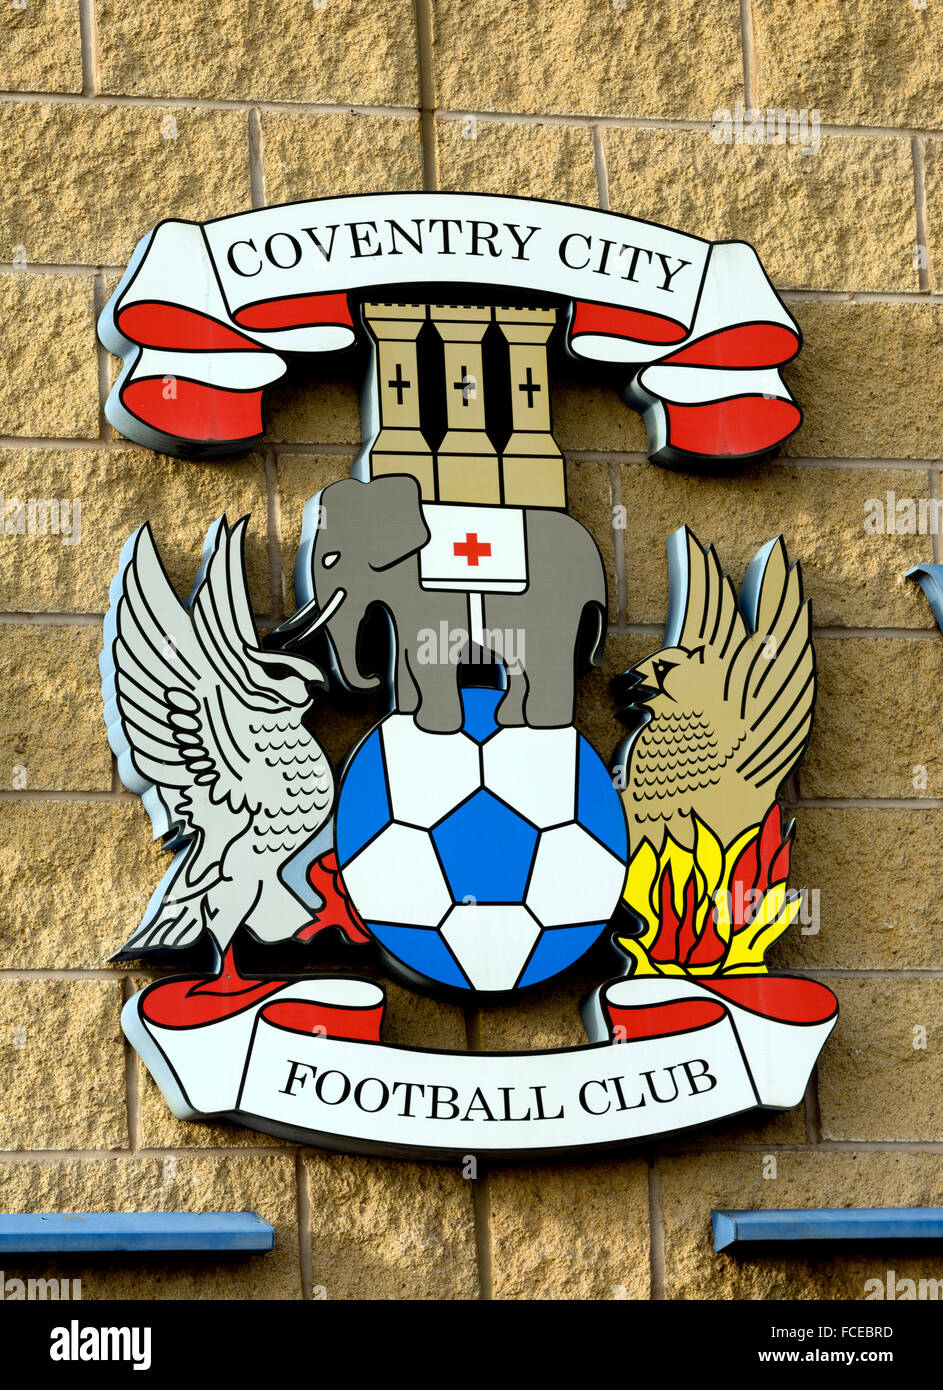 Coventry City Football Club badge at the Ricoh Arena, Coventry, UK - Stock Image